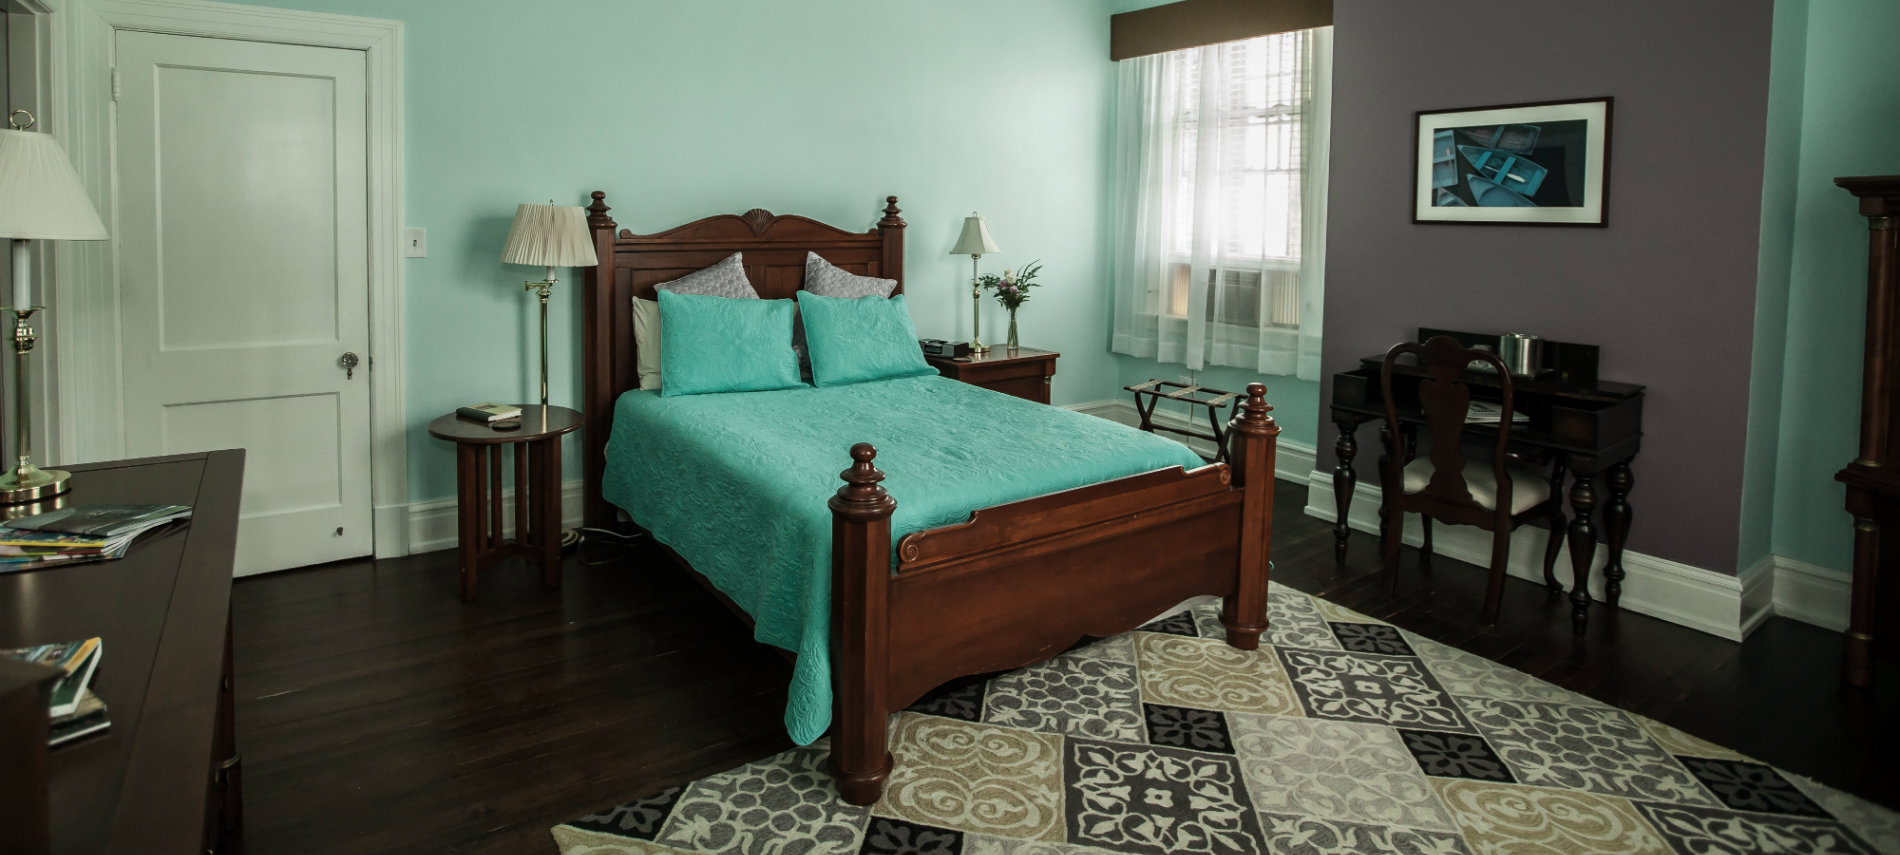 Jasmine Room with a pastel green bedspread